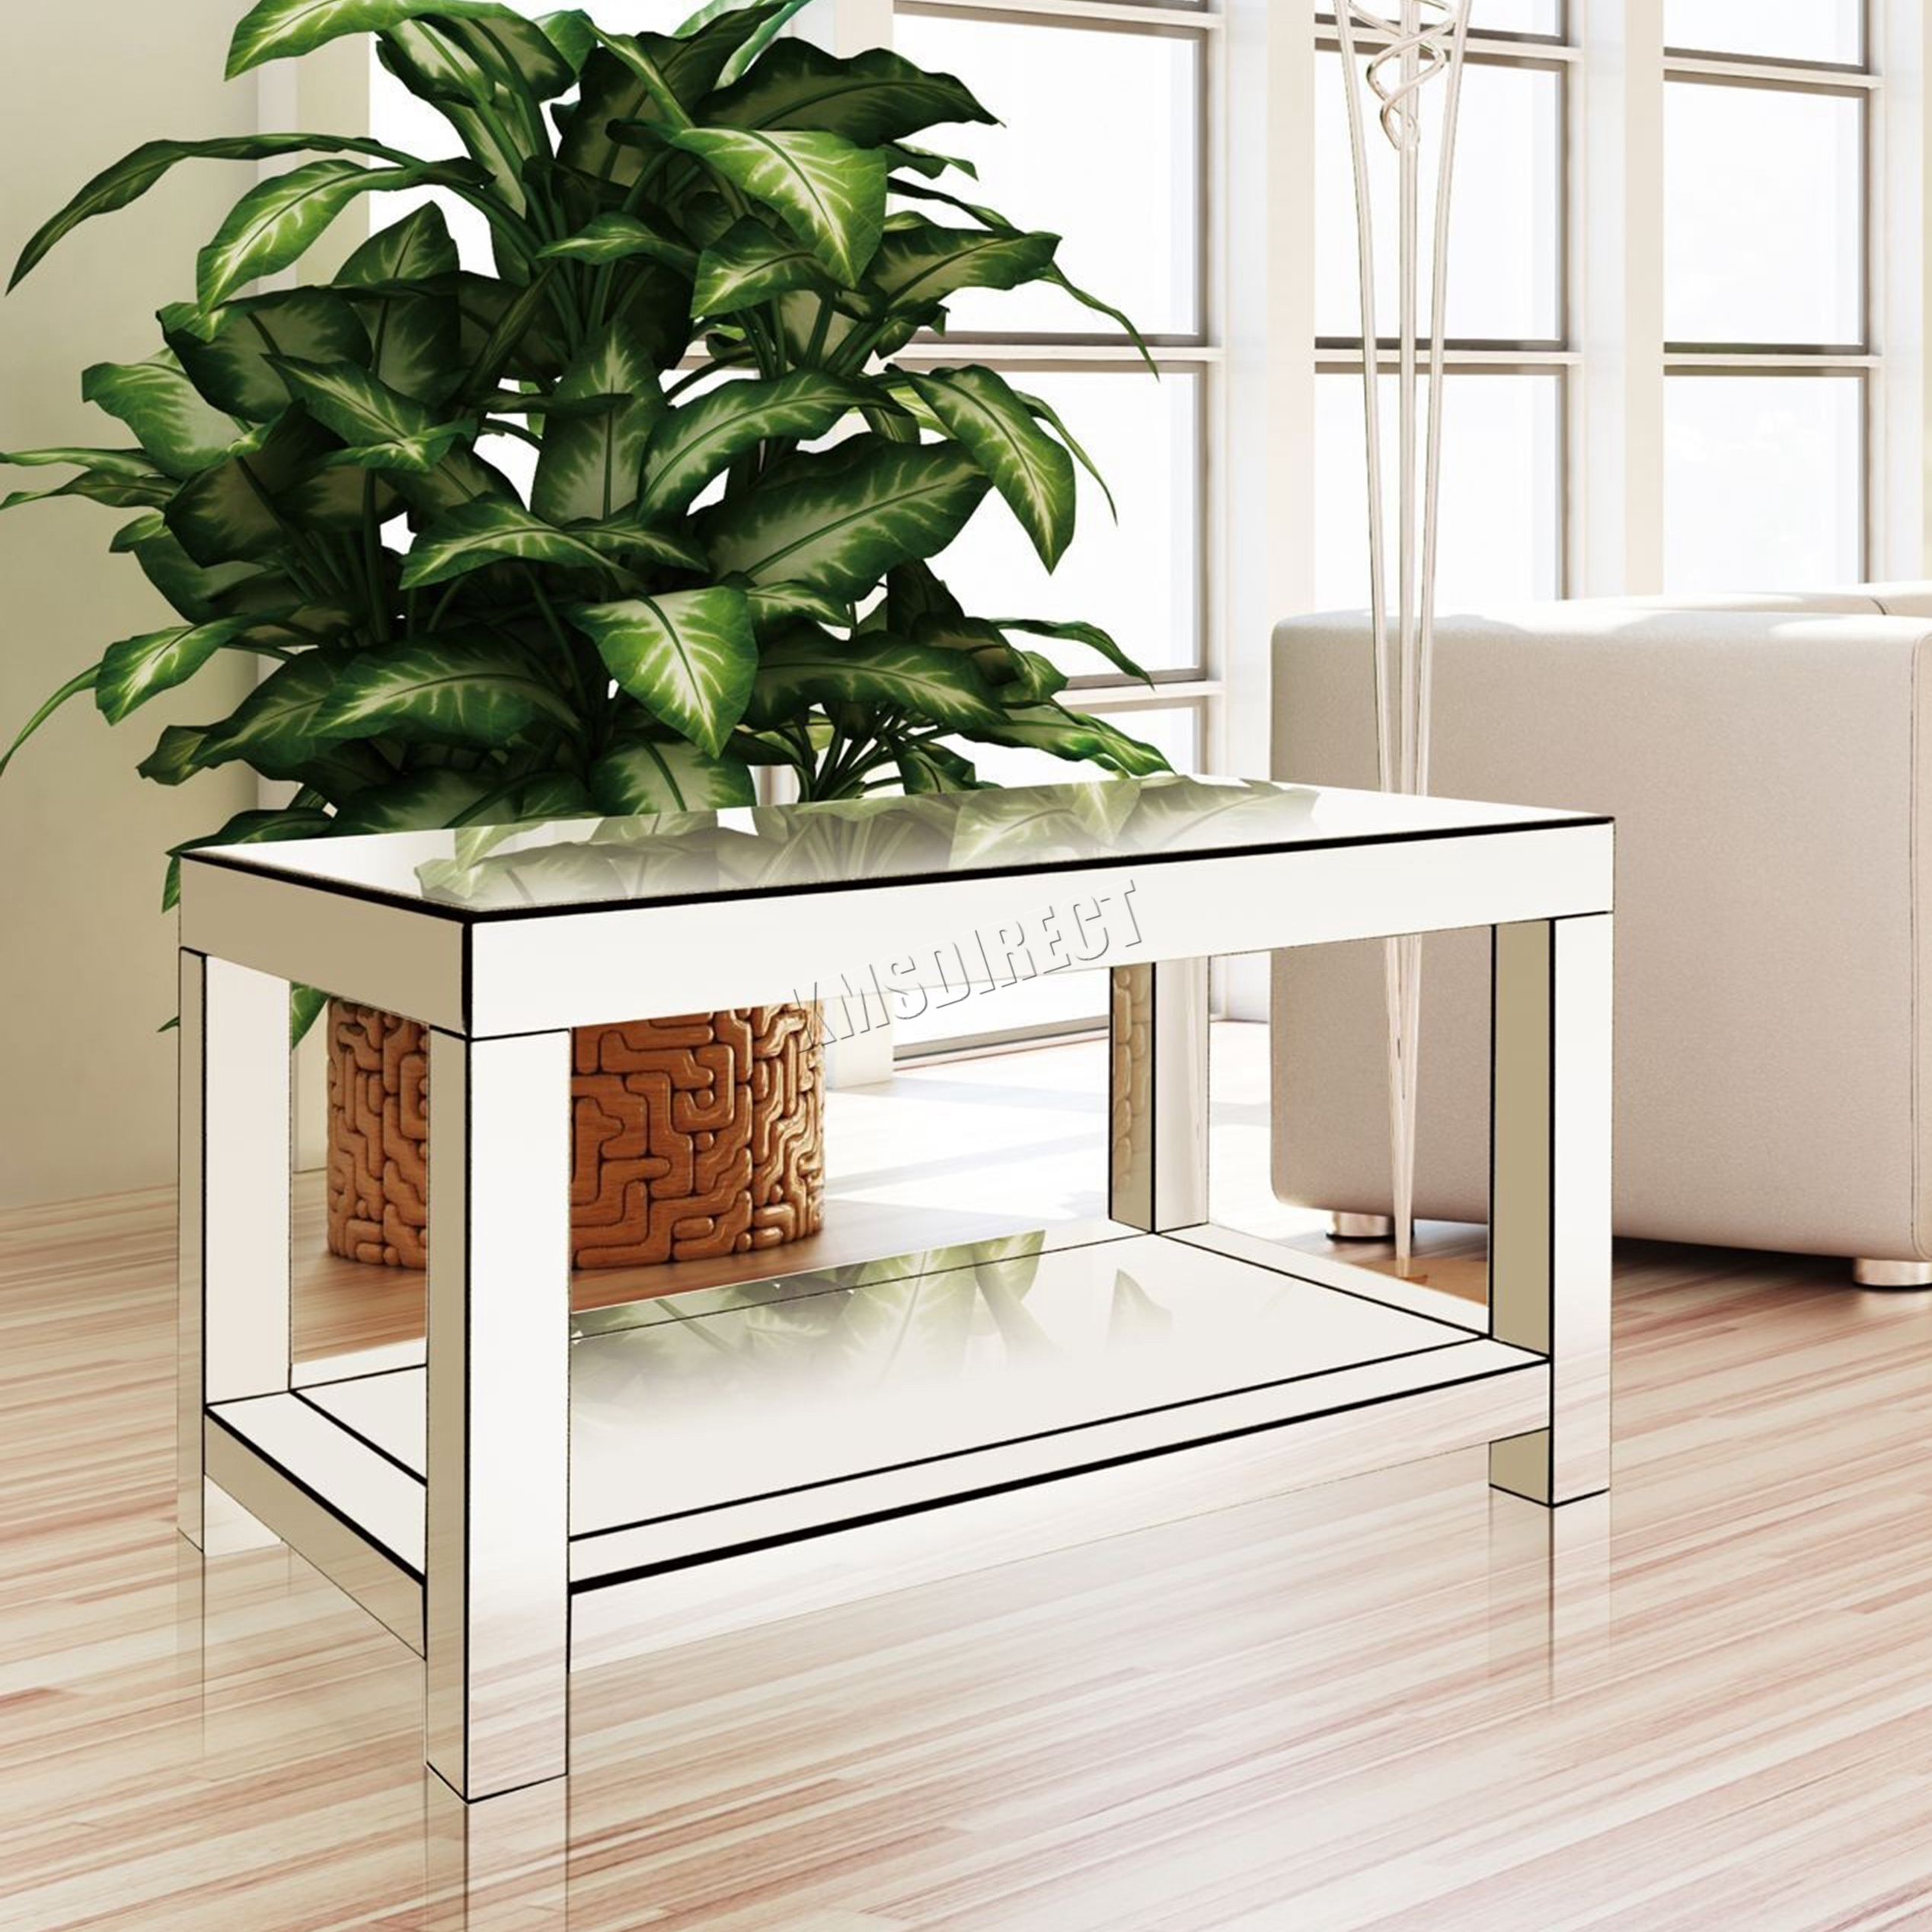 Foxhunter mirrored furniture glass coffee table 2 tier for Does a living room need a coffee table